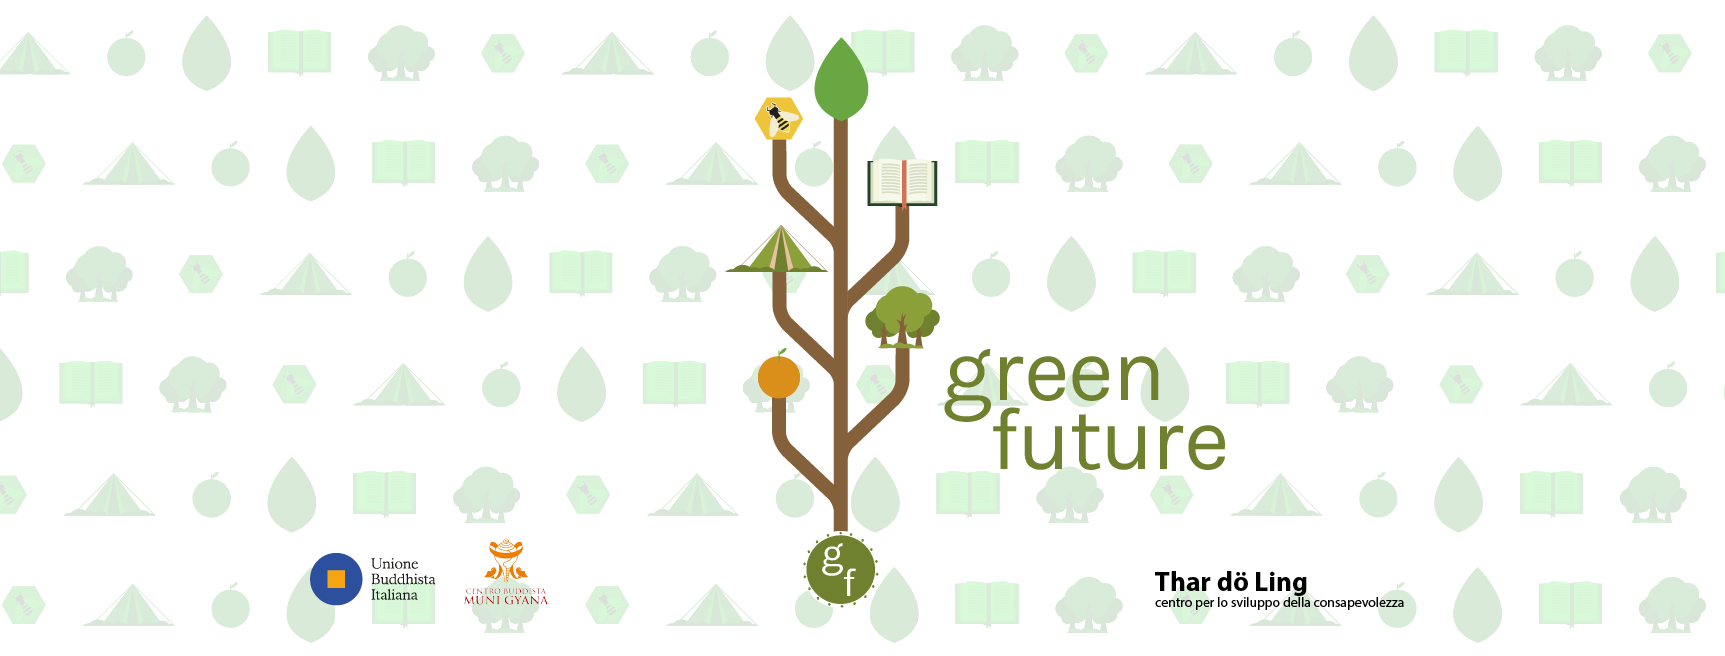 Green futureSAVE THE WORLD BY PLANTING TREE